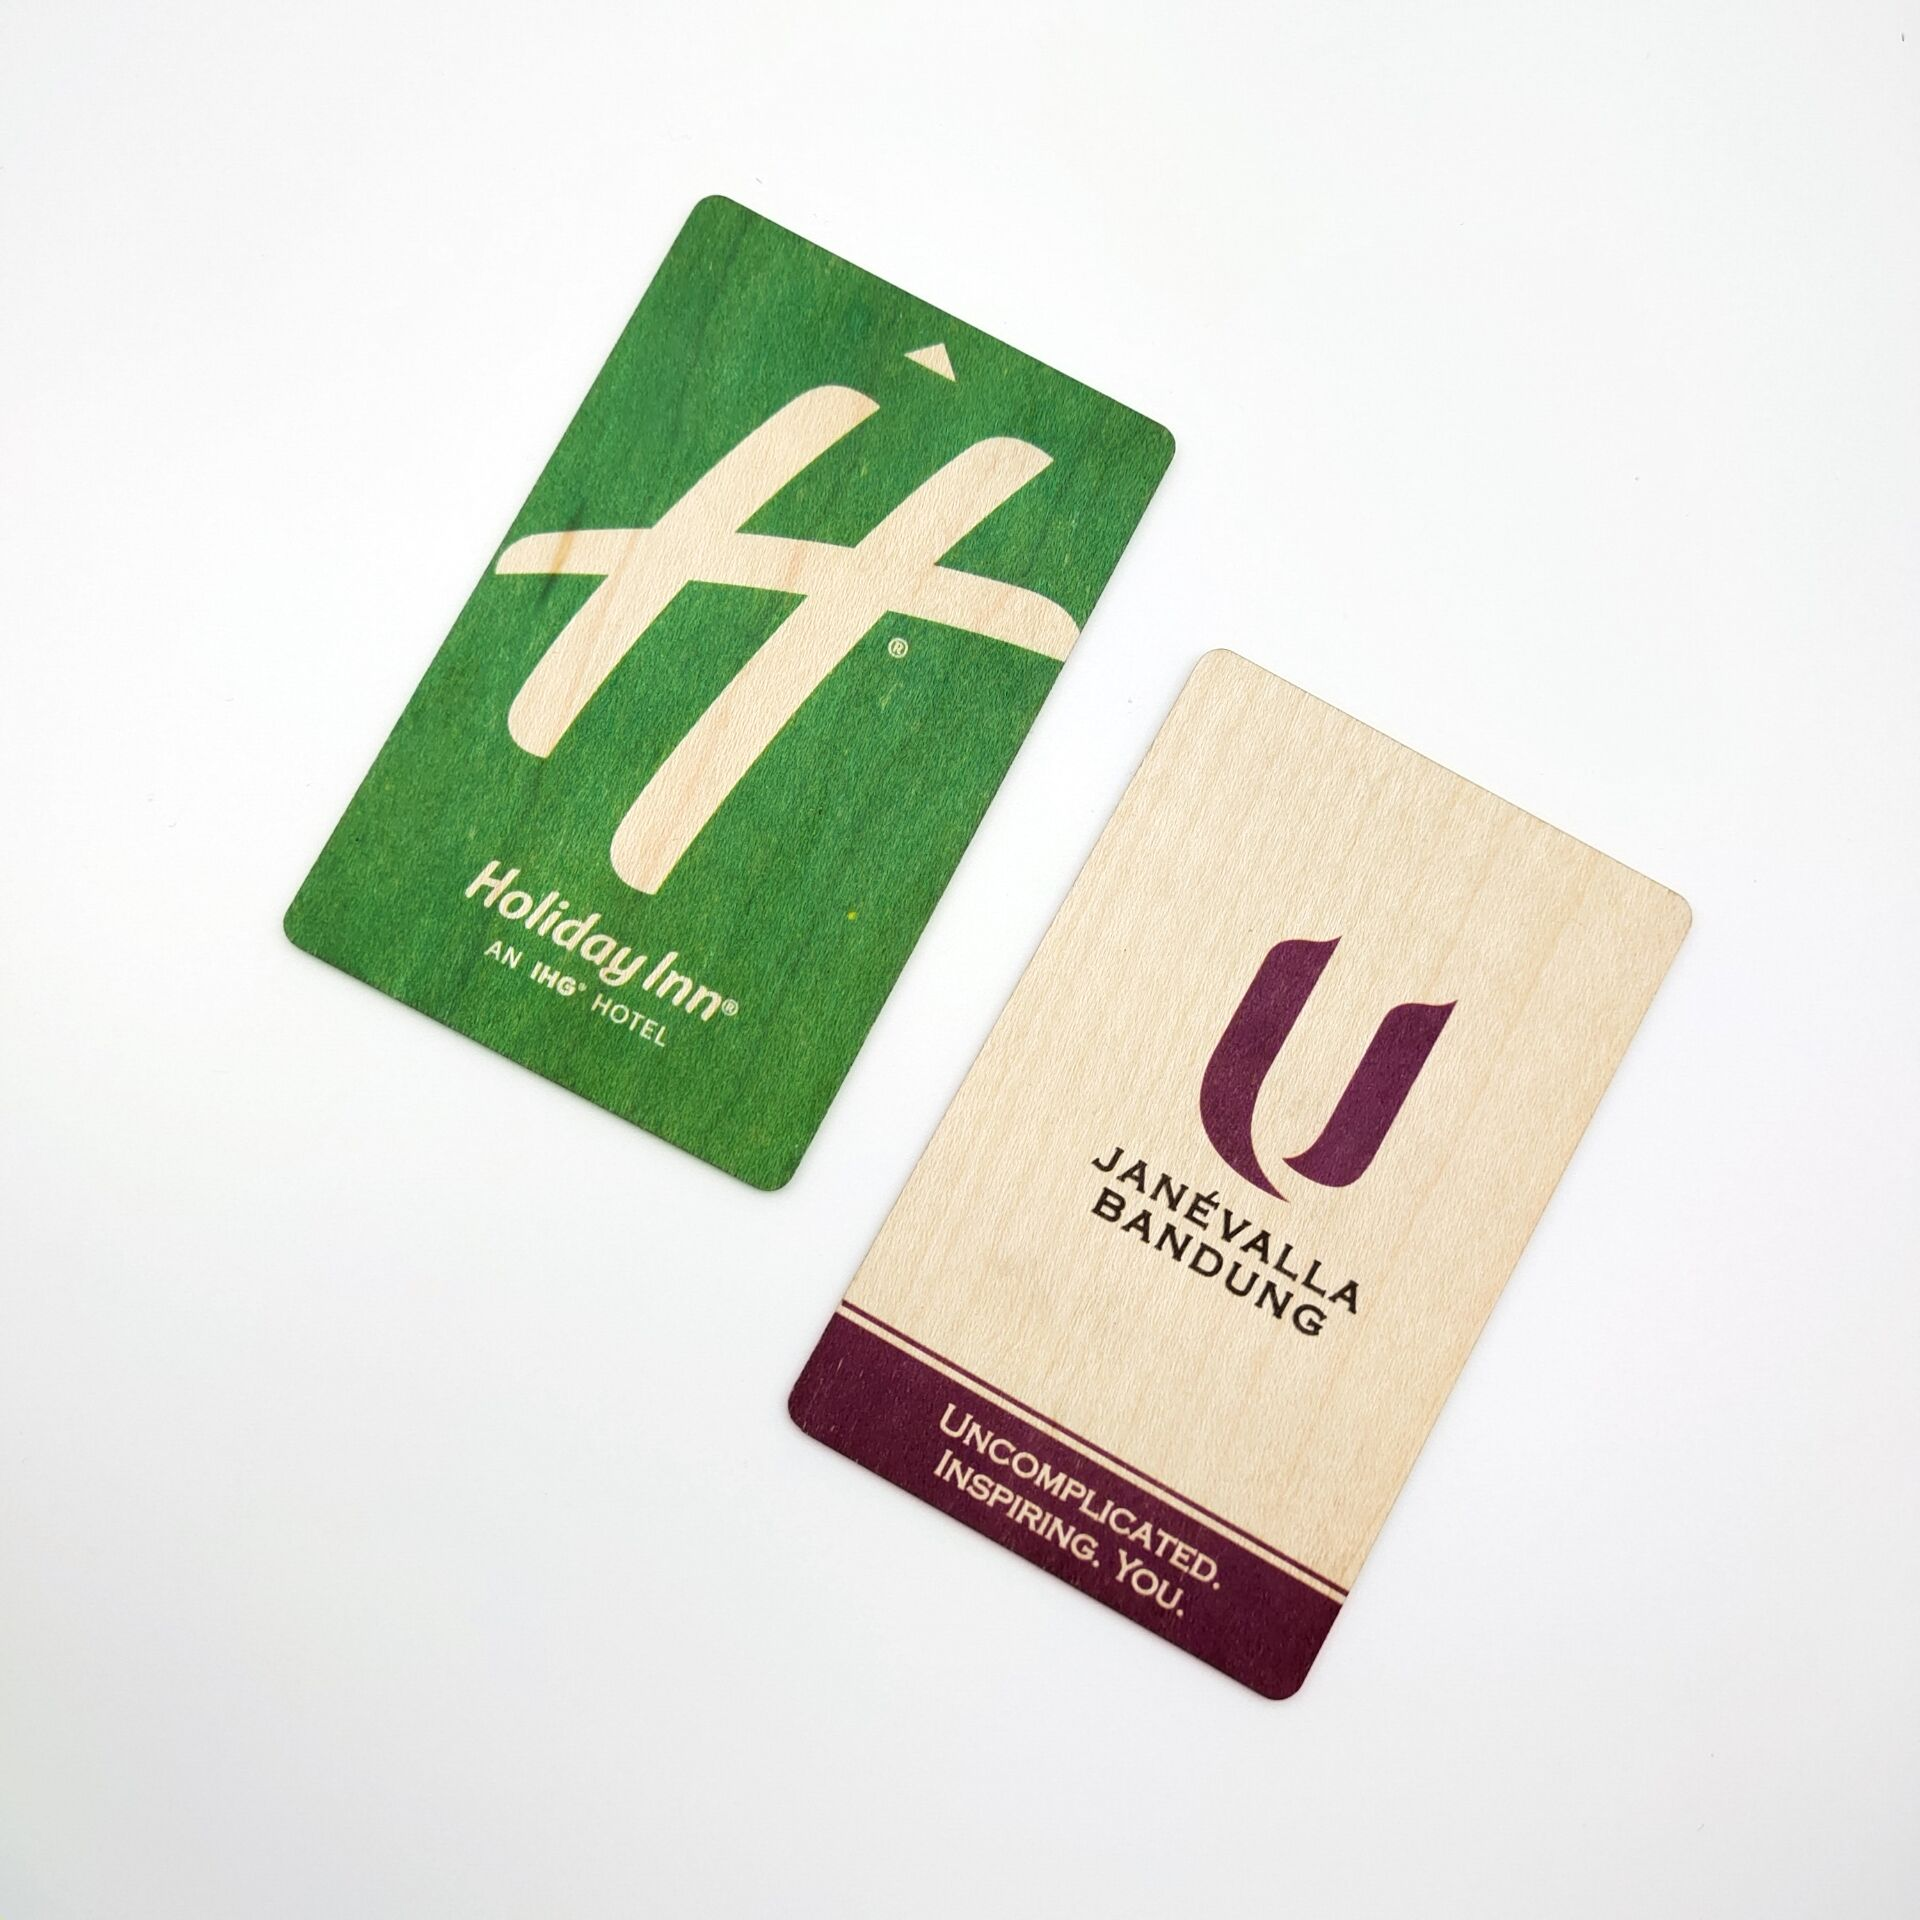 Wooden Hotel key cards